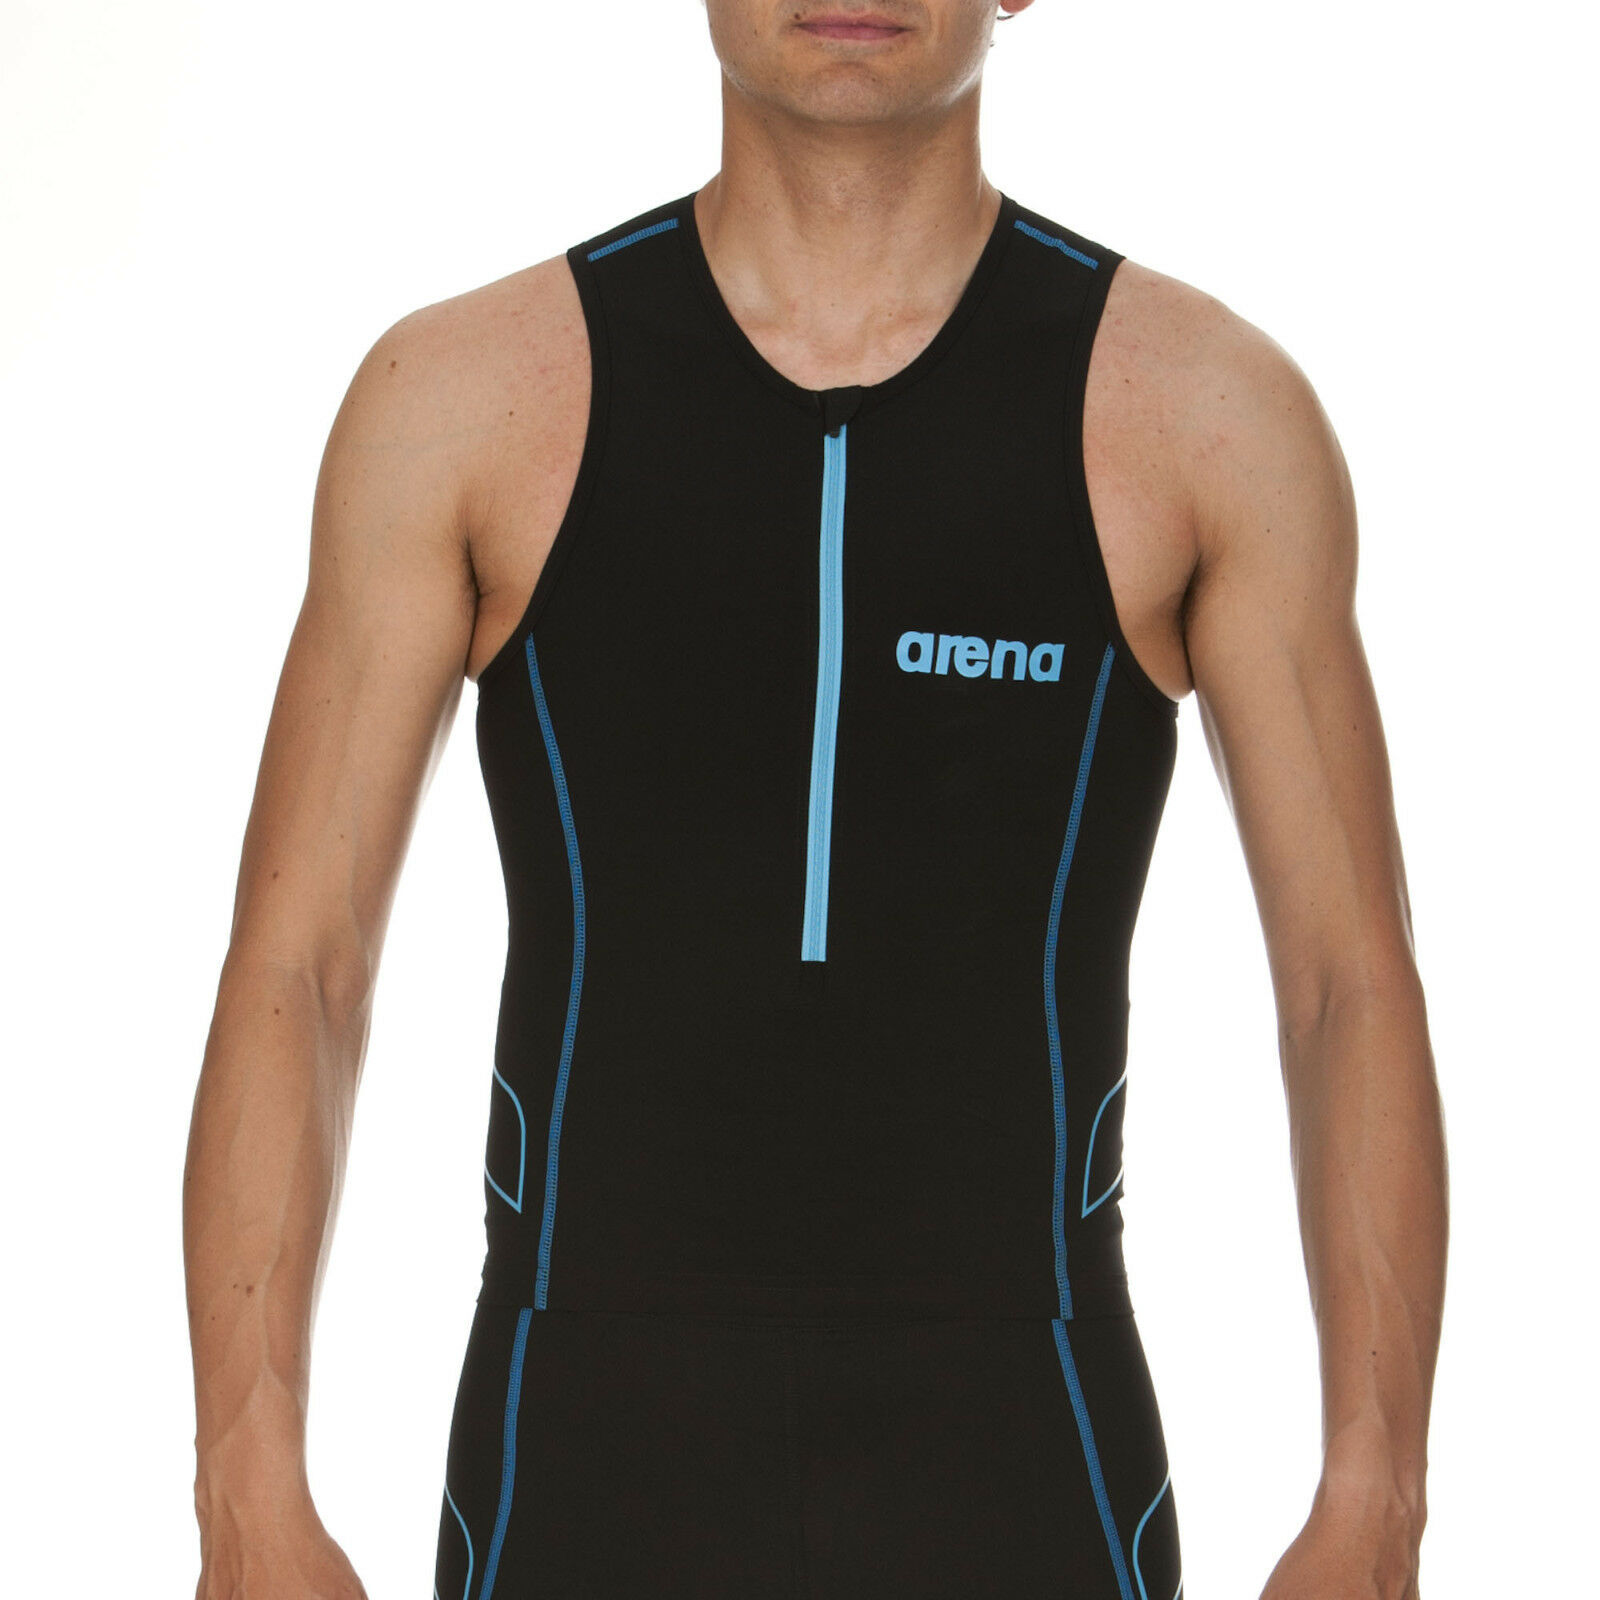 Arena ST Tritop Mens Triathlon Racing Running Cycling Training Top Front Zip